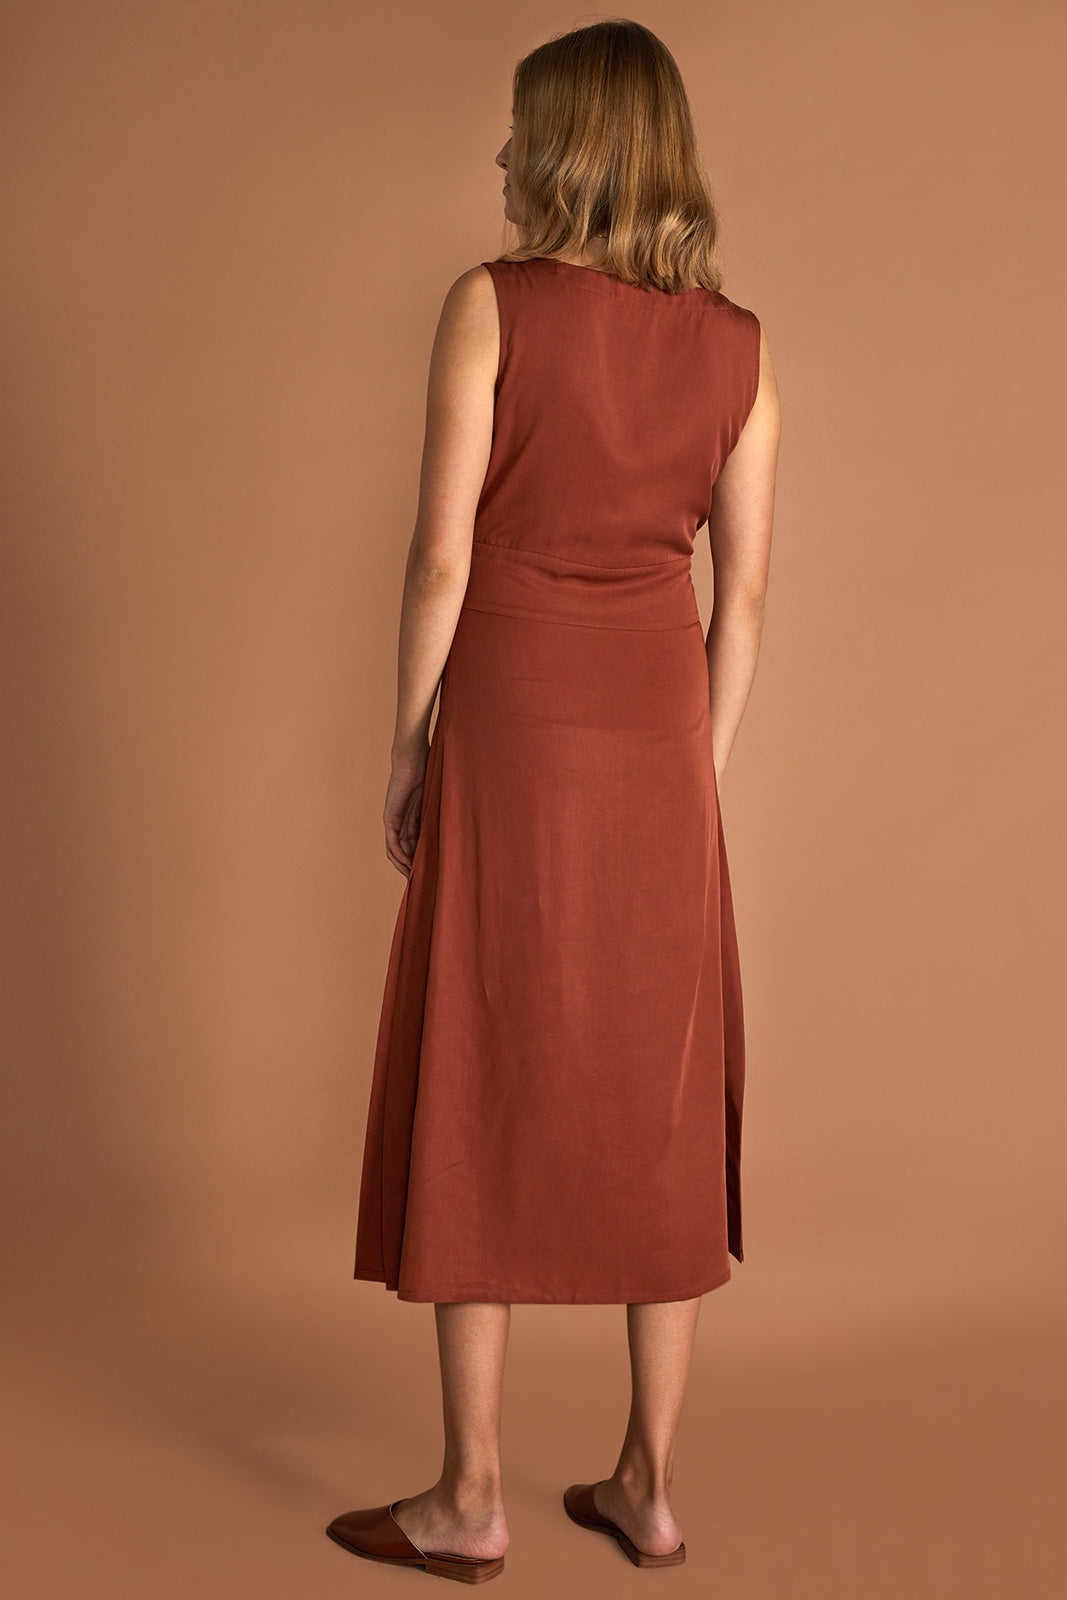 THE FARETTA DRESS